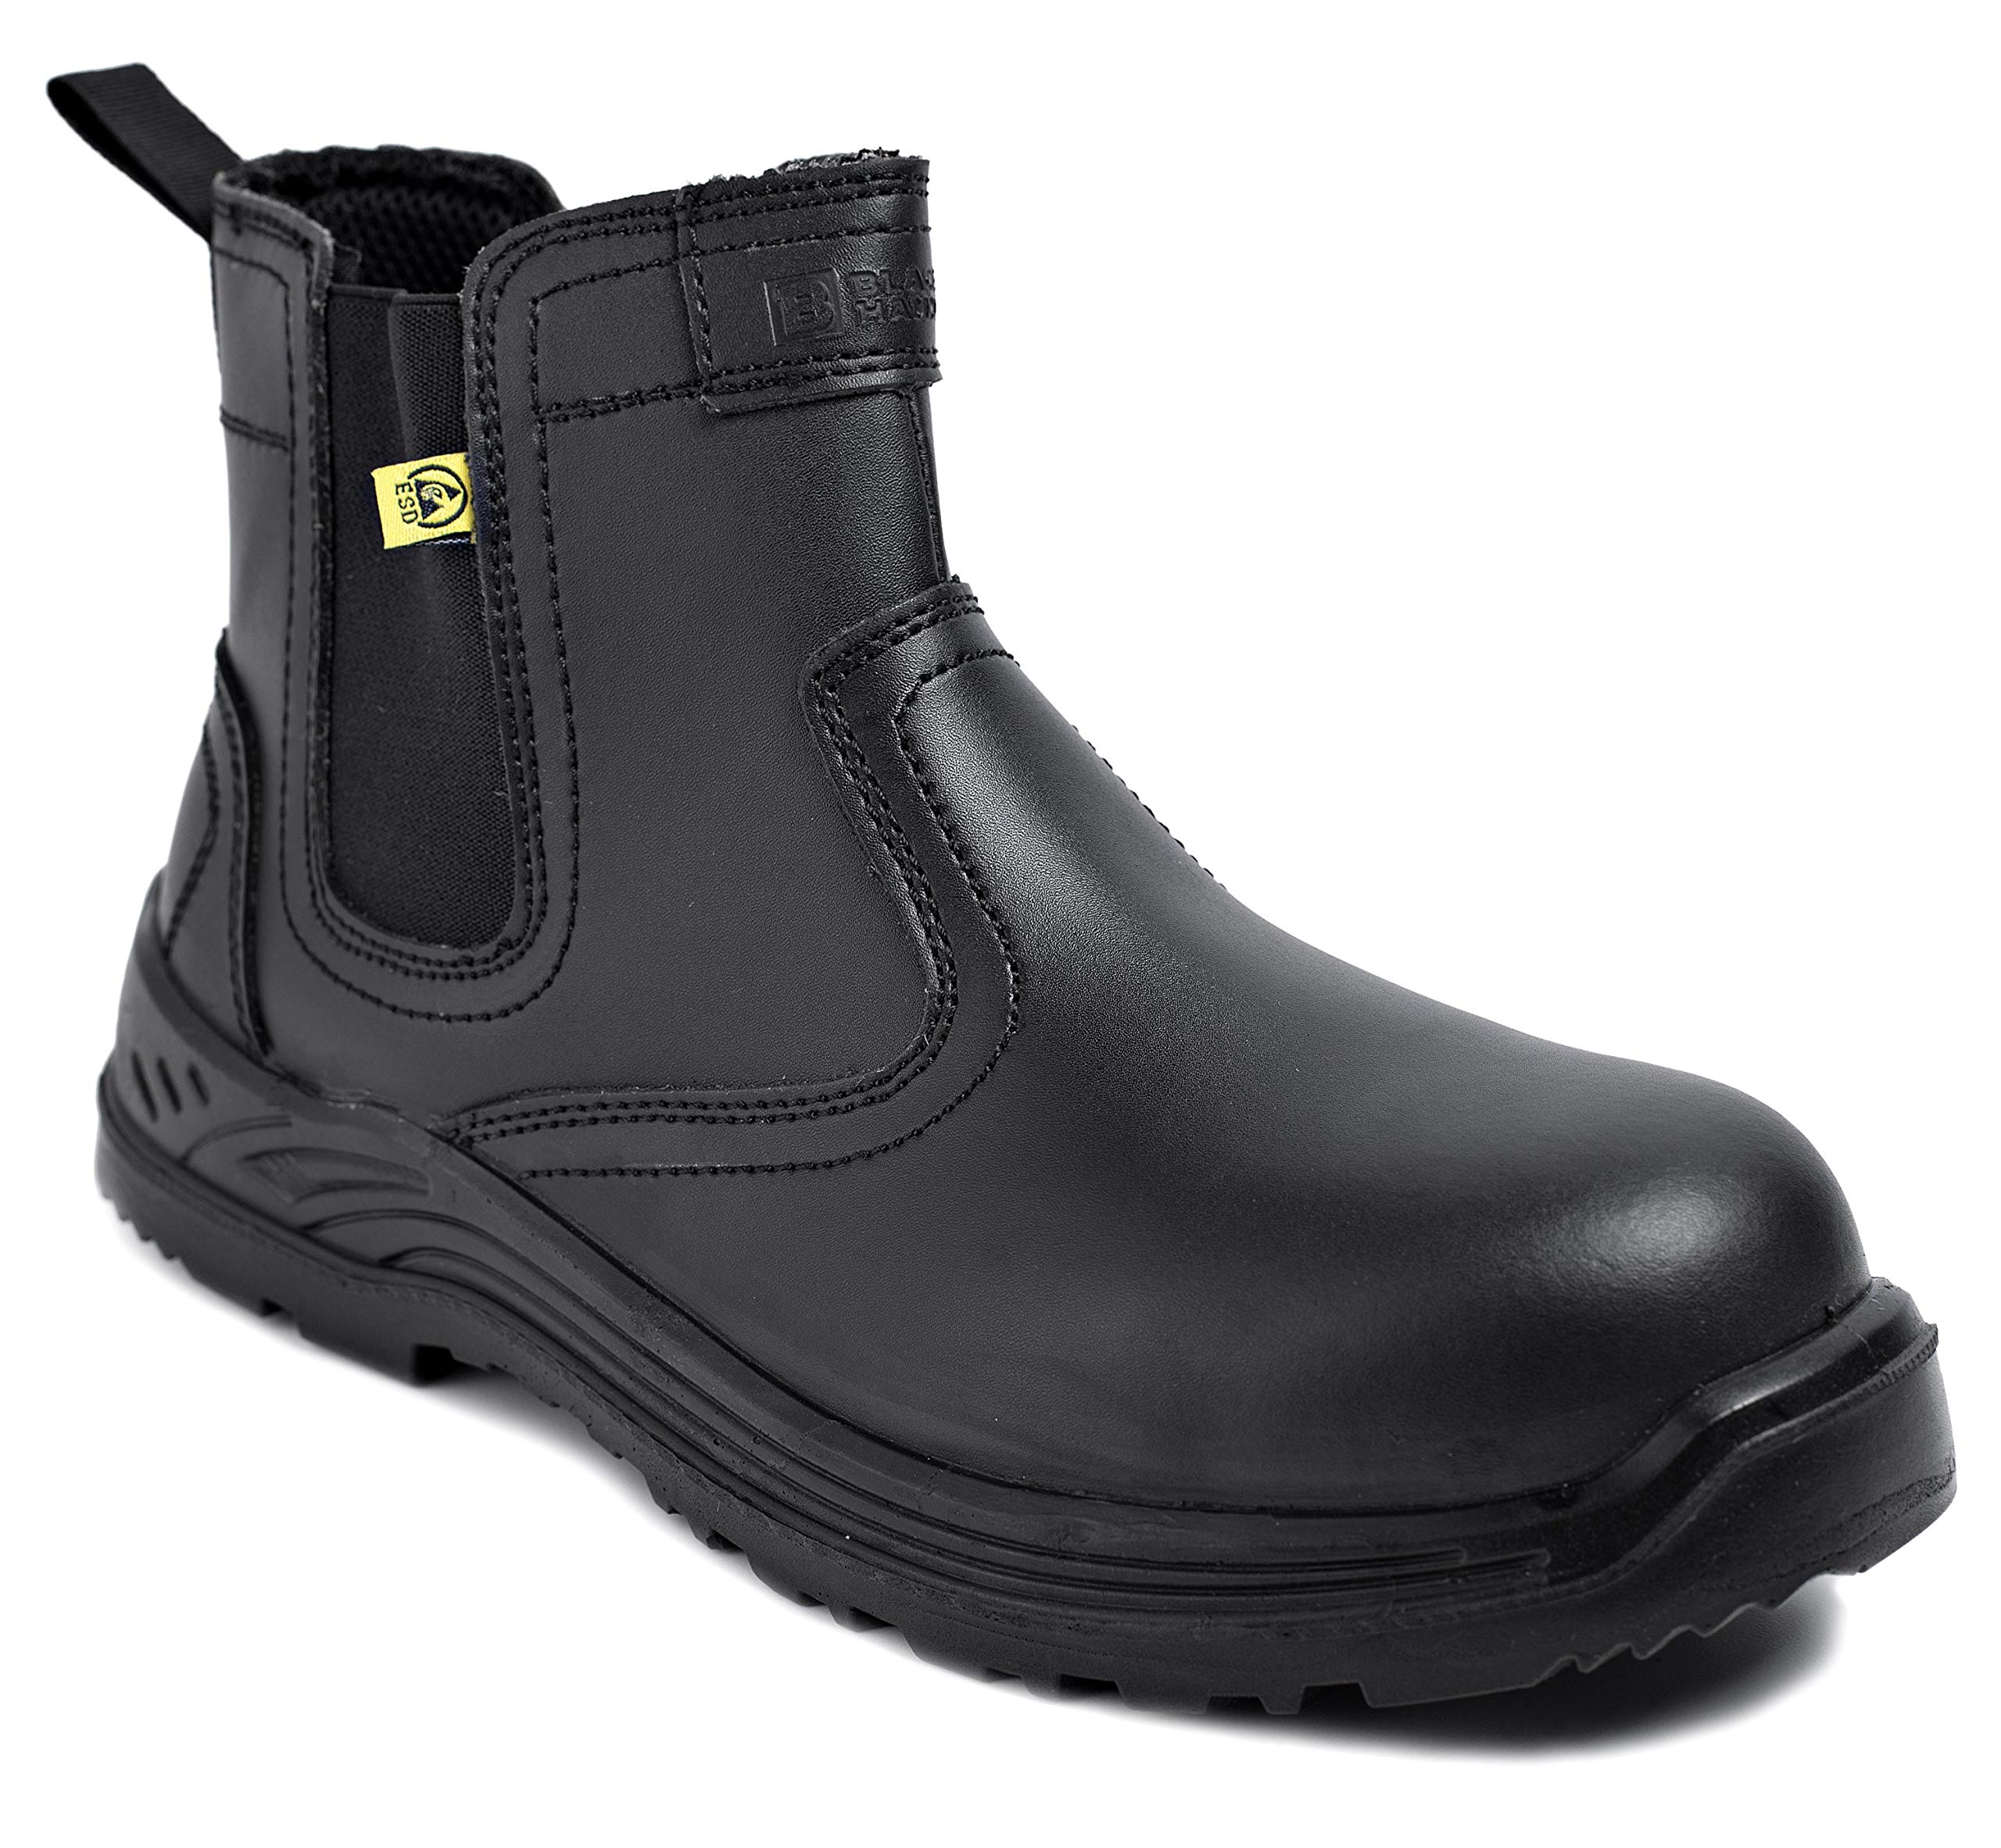 Black Hammer Mens Safety Boots Chelsea